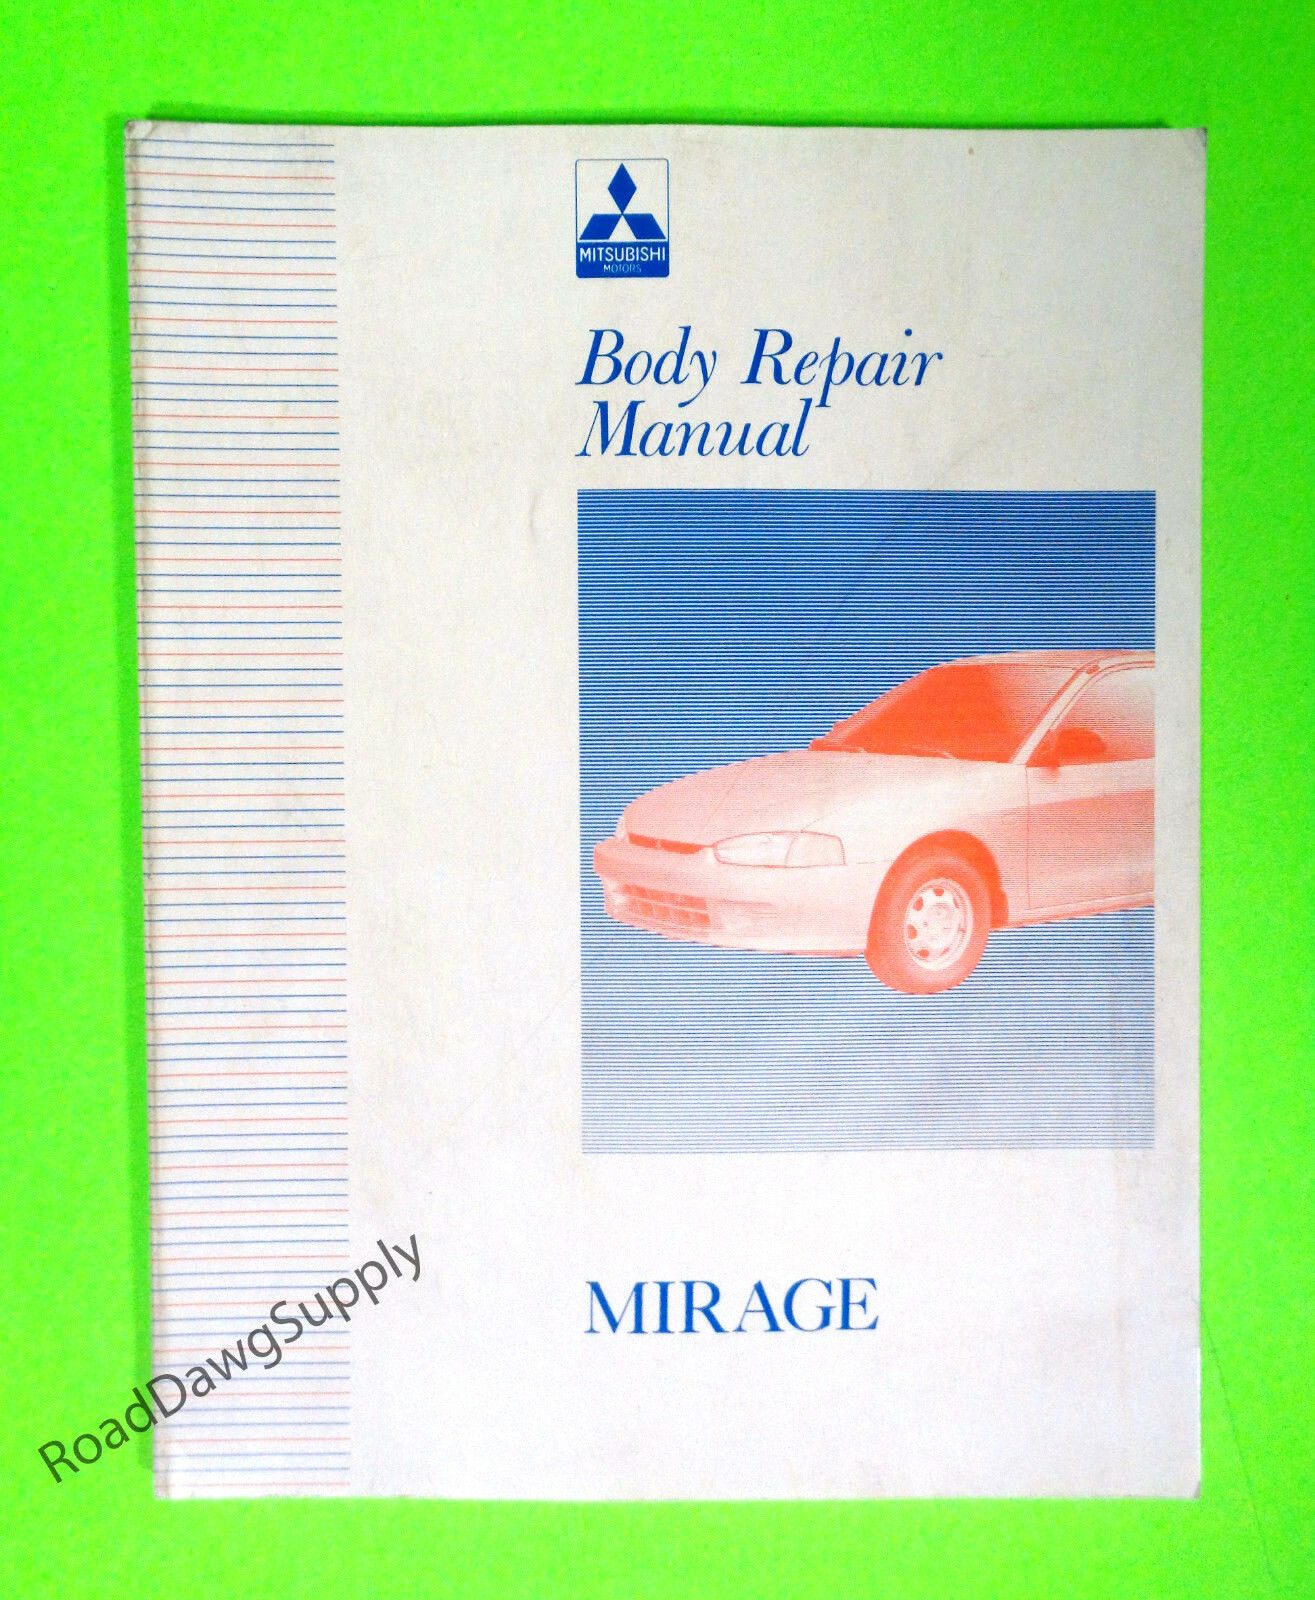 1997 Mitsubishi Mirage Body Repair Service Manual Book 1799 Wiring Diagram 1 Of 1only Available